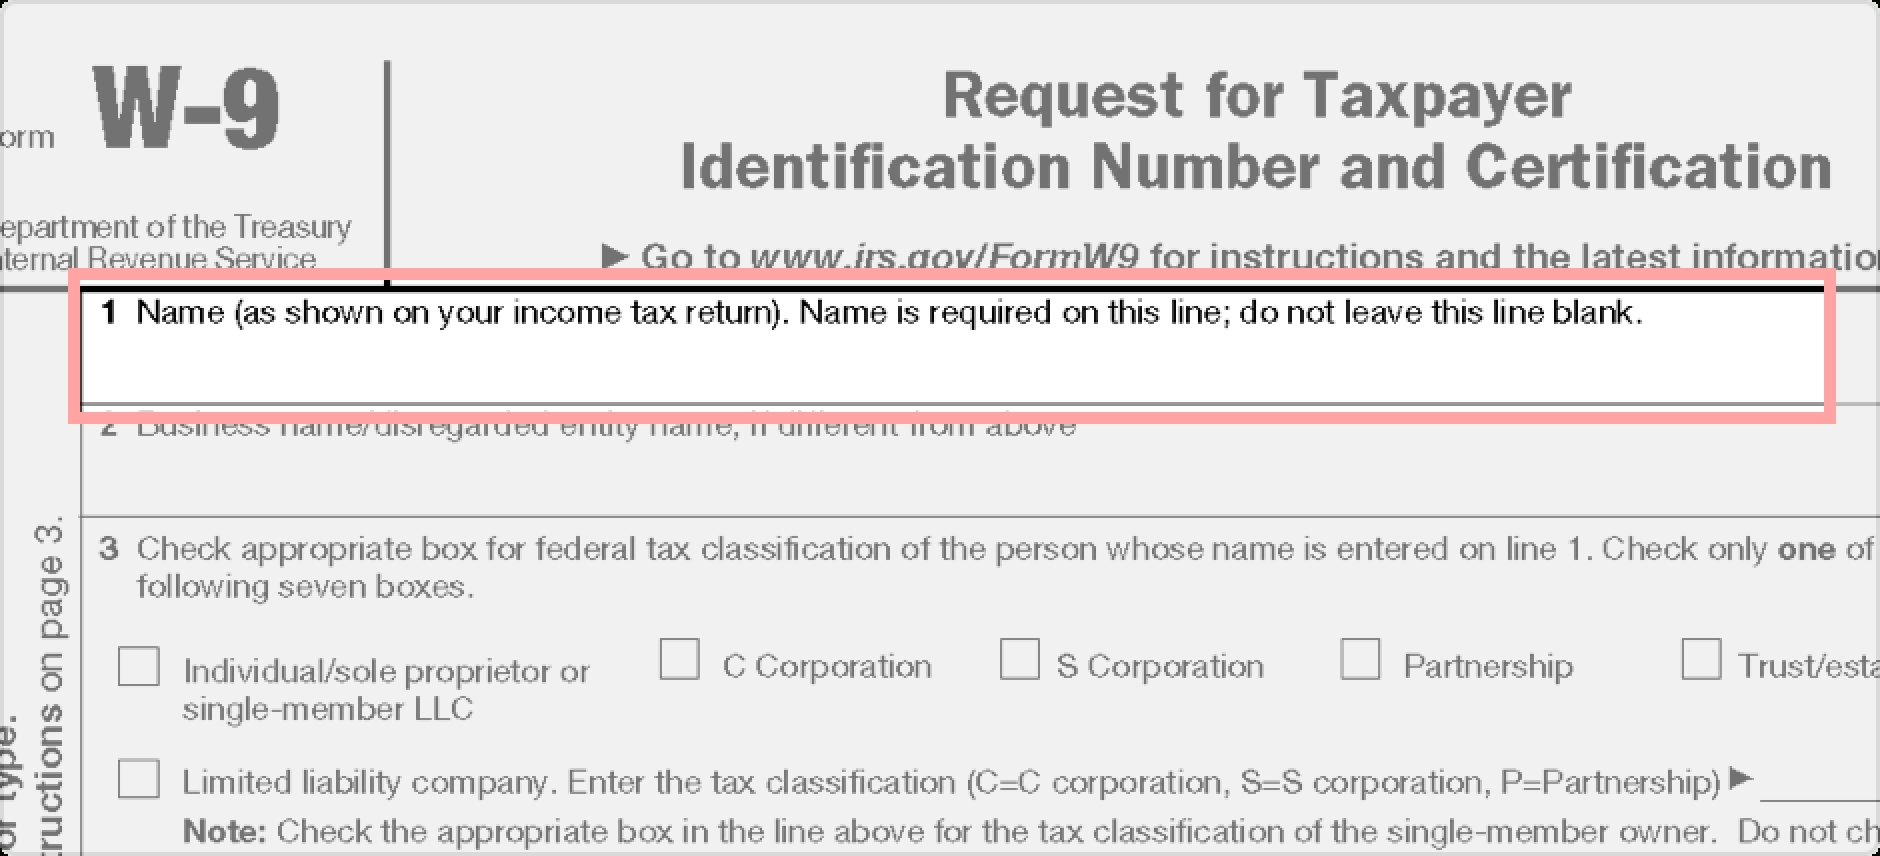 W-9 Form: Fillable, Printable, Download Free. 2019 Instructions-2020 W 9 Blank Form